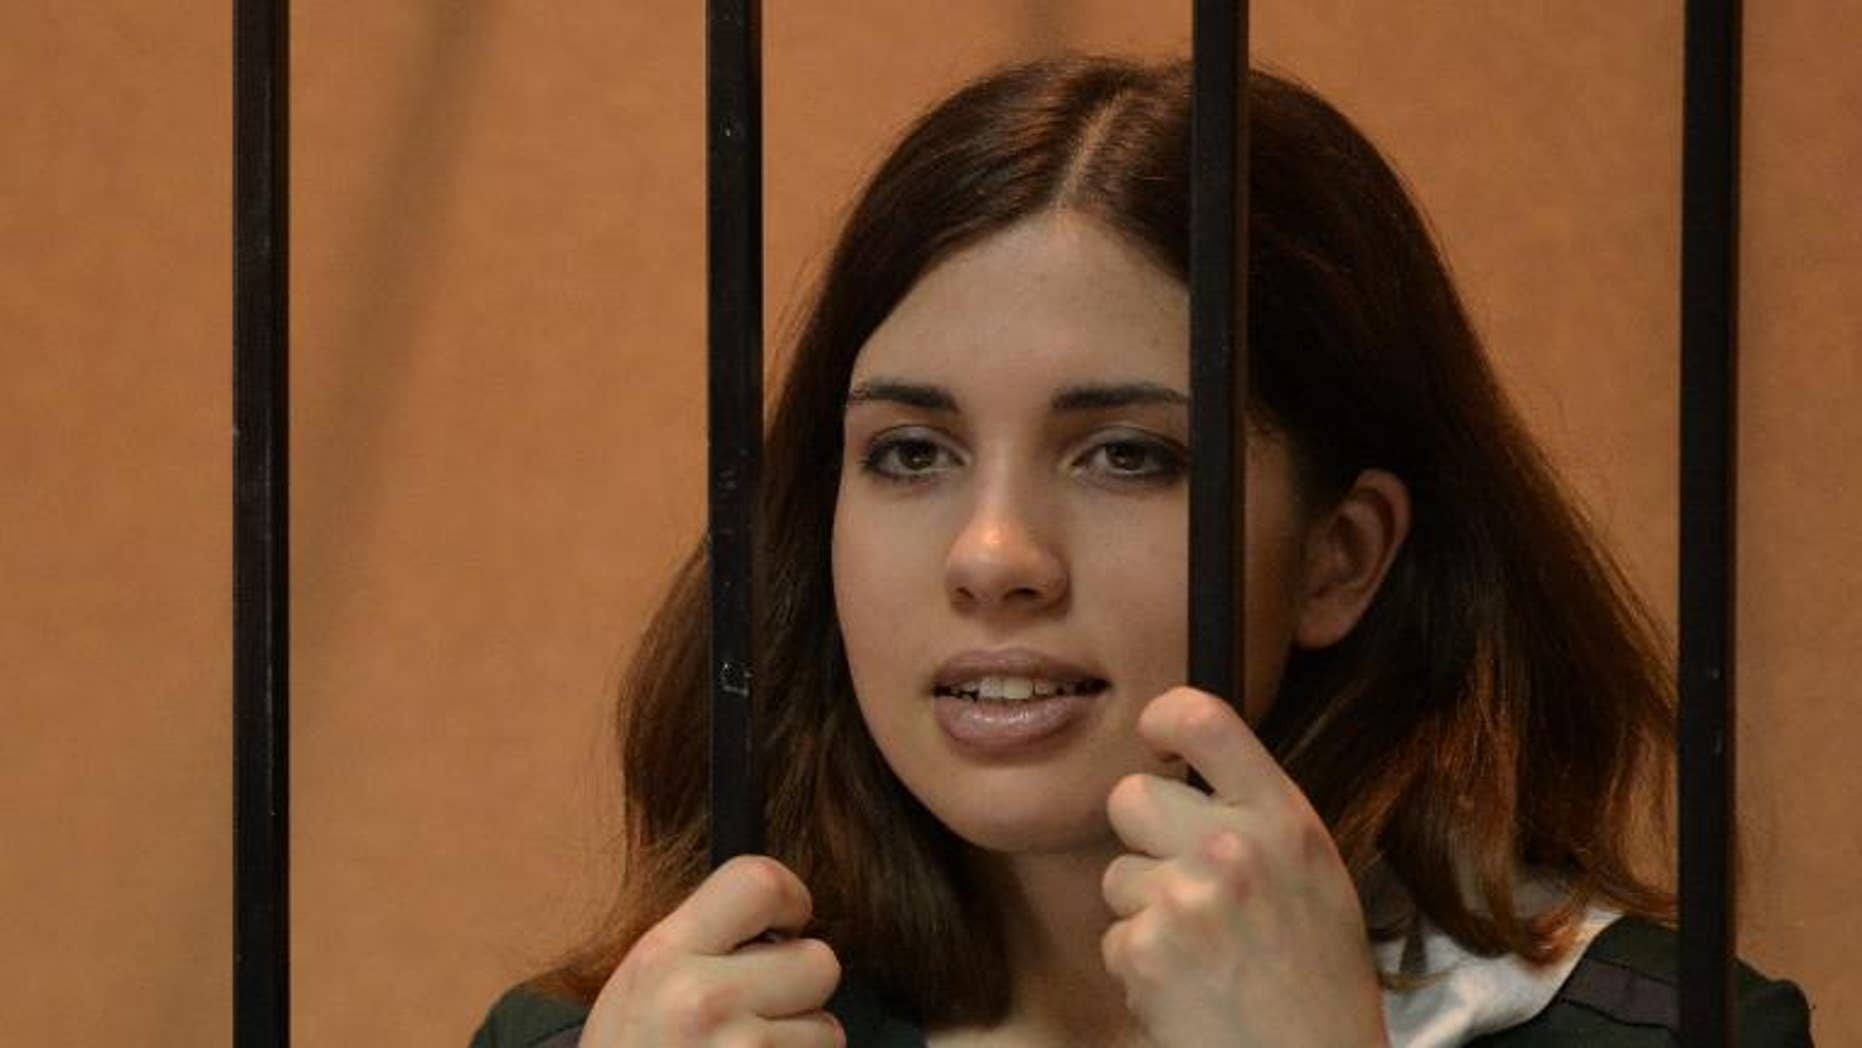 """""""Pussy Riot"""" punk Nadezhda Tolokonnikova waits in the defendant's cage at a courthouse in Zubova Polyana, on April 26, 2013"""